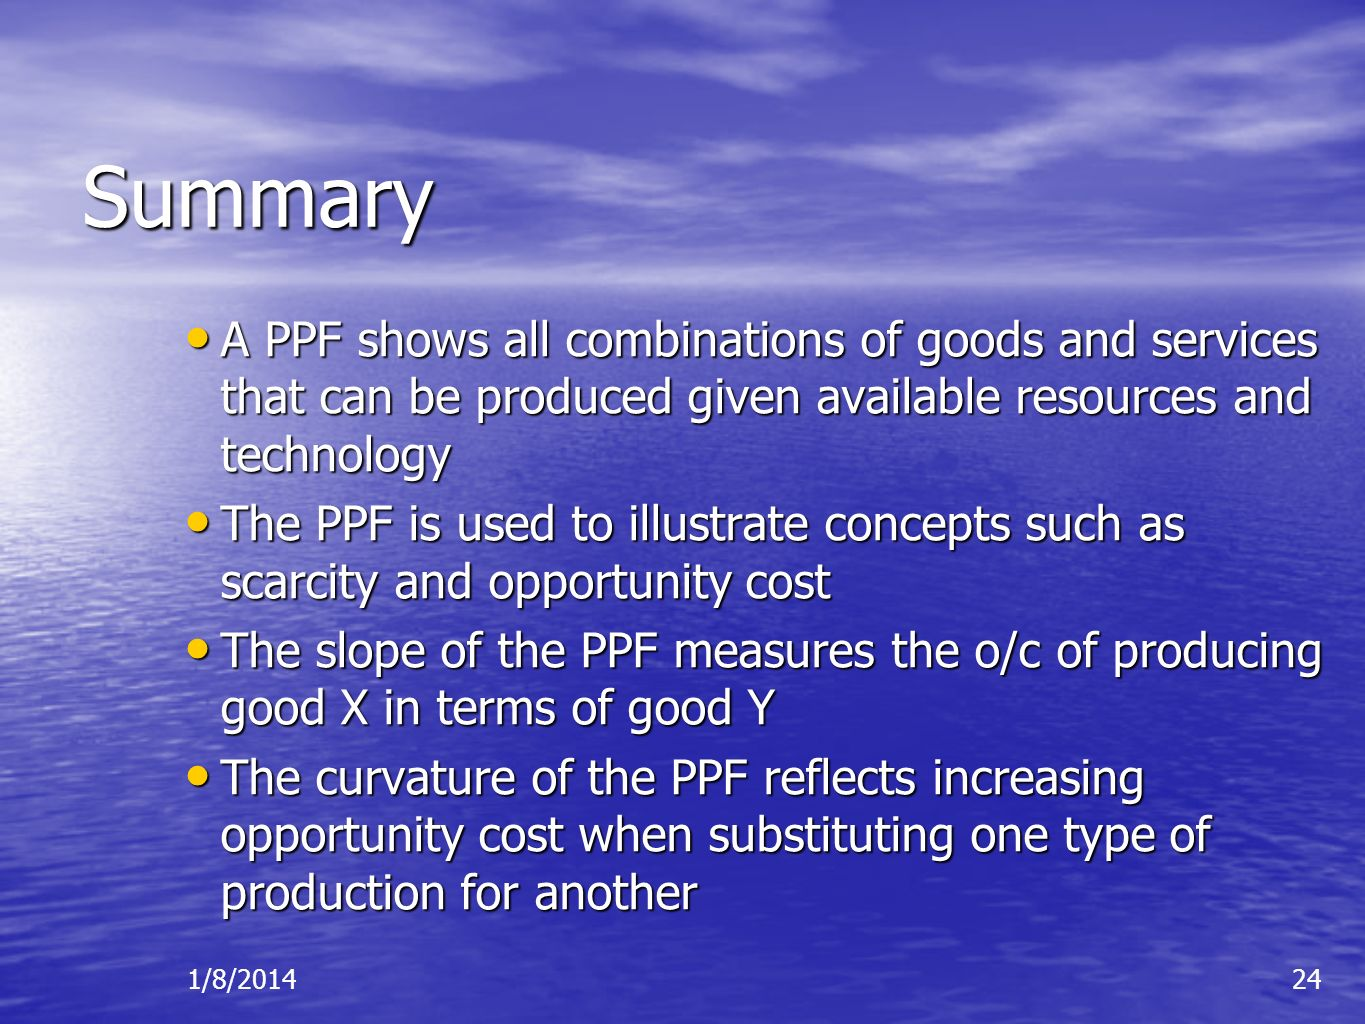 Summary A PPF shows all combinations of goods and services that can be produced given available resources and technology.